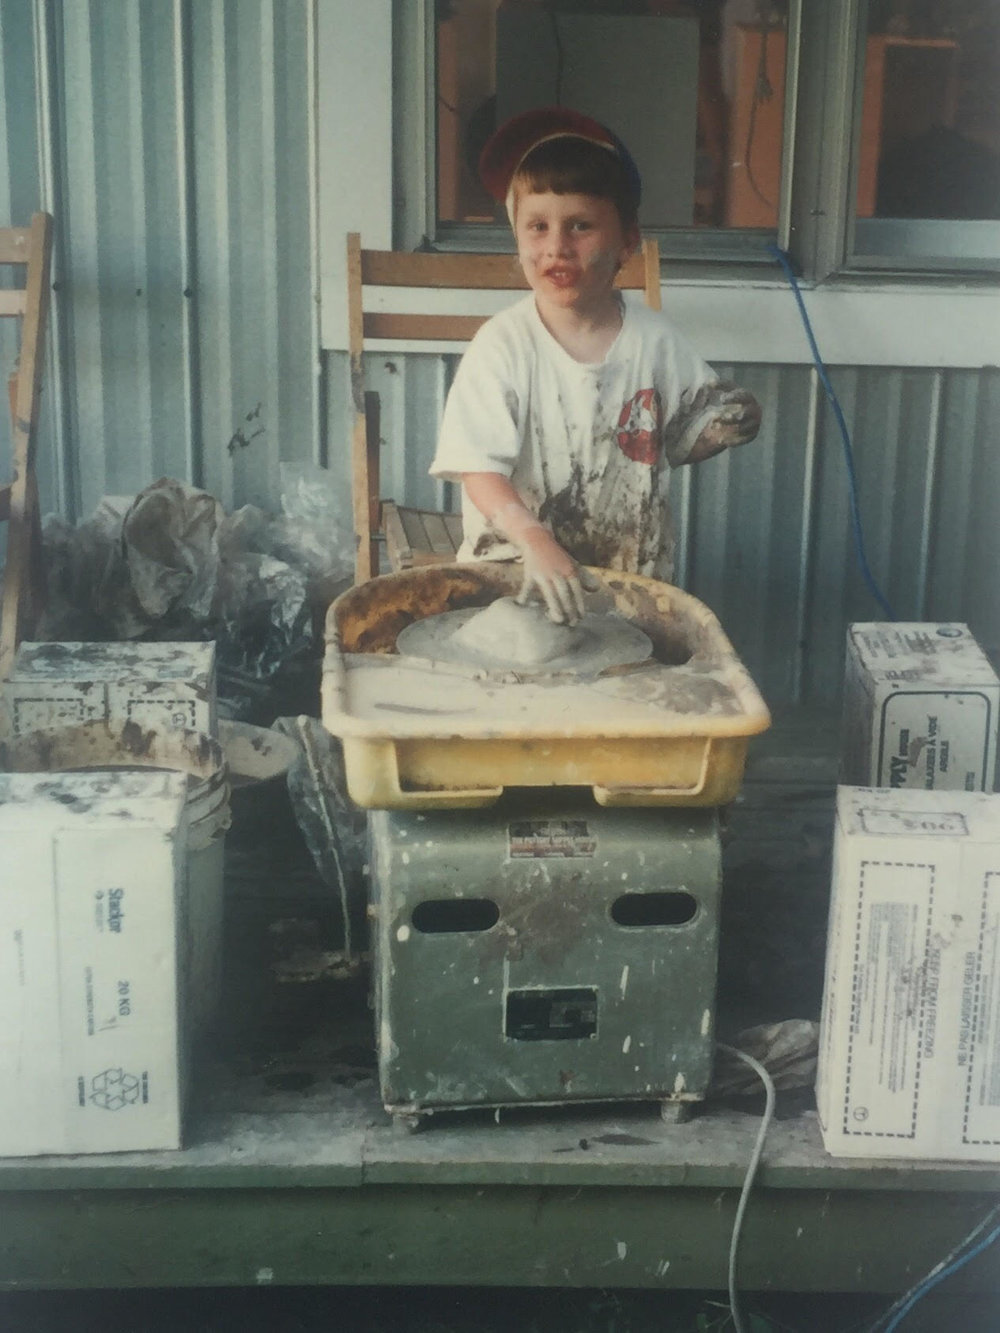 Gab at seven years old, tinkering with his dad's pottery wheel